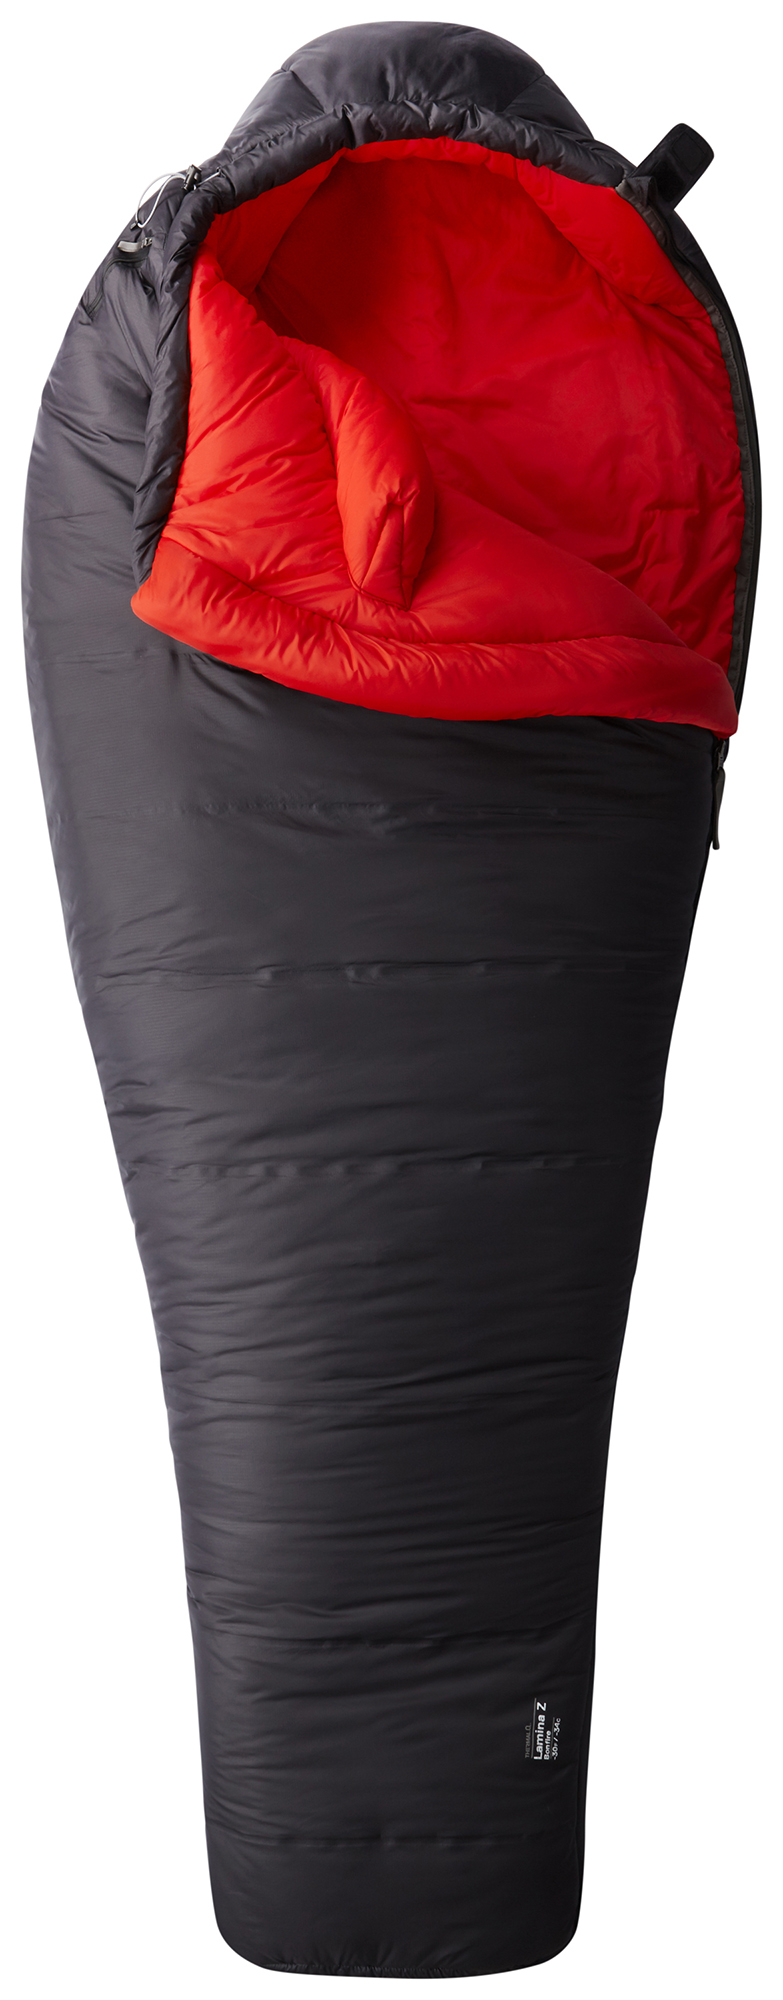 Mountain Hardwear Mountain Hardwear Lamina Z Bonfire, размер 182